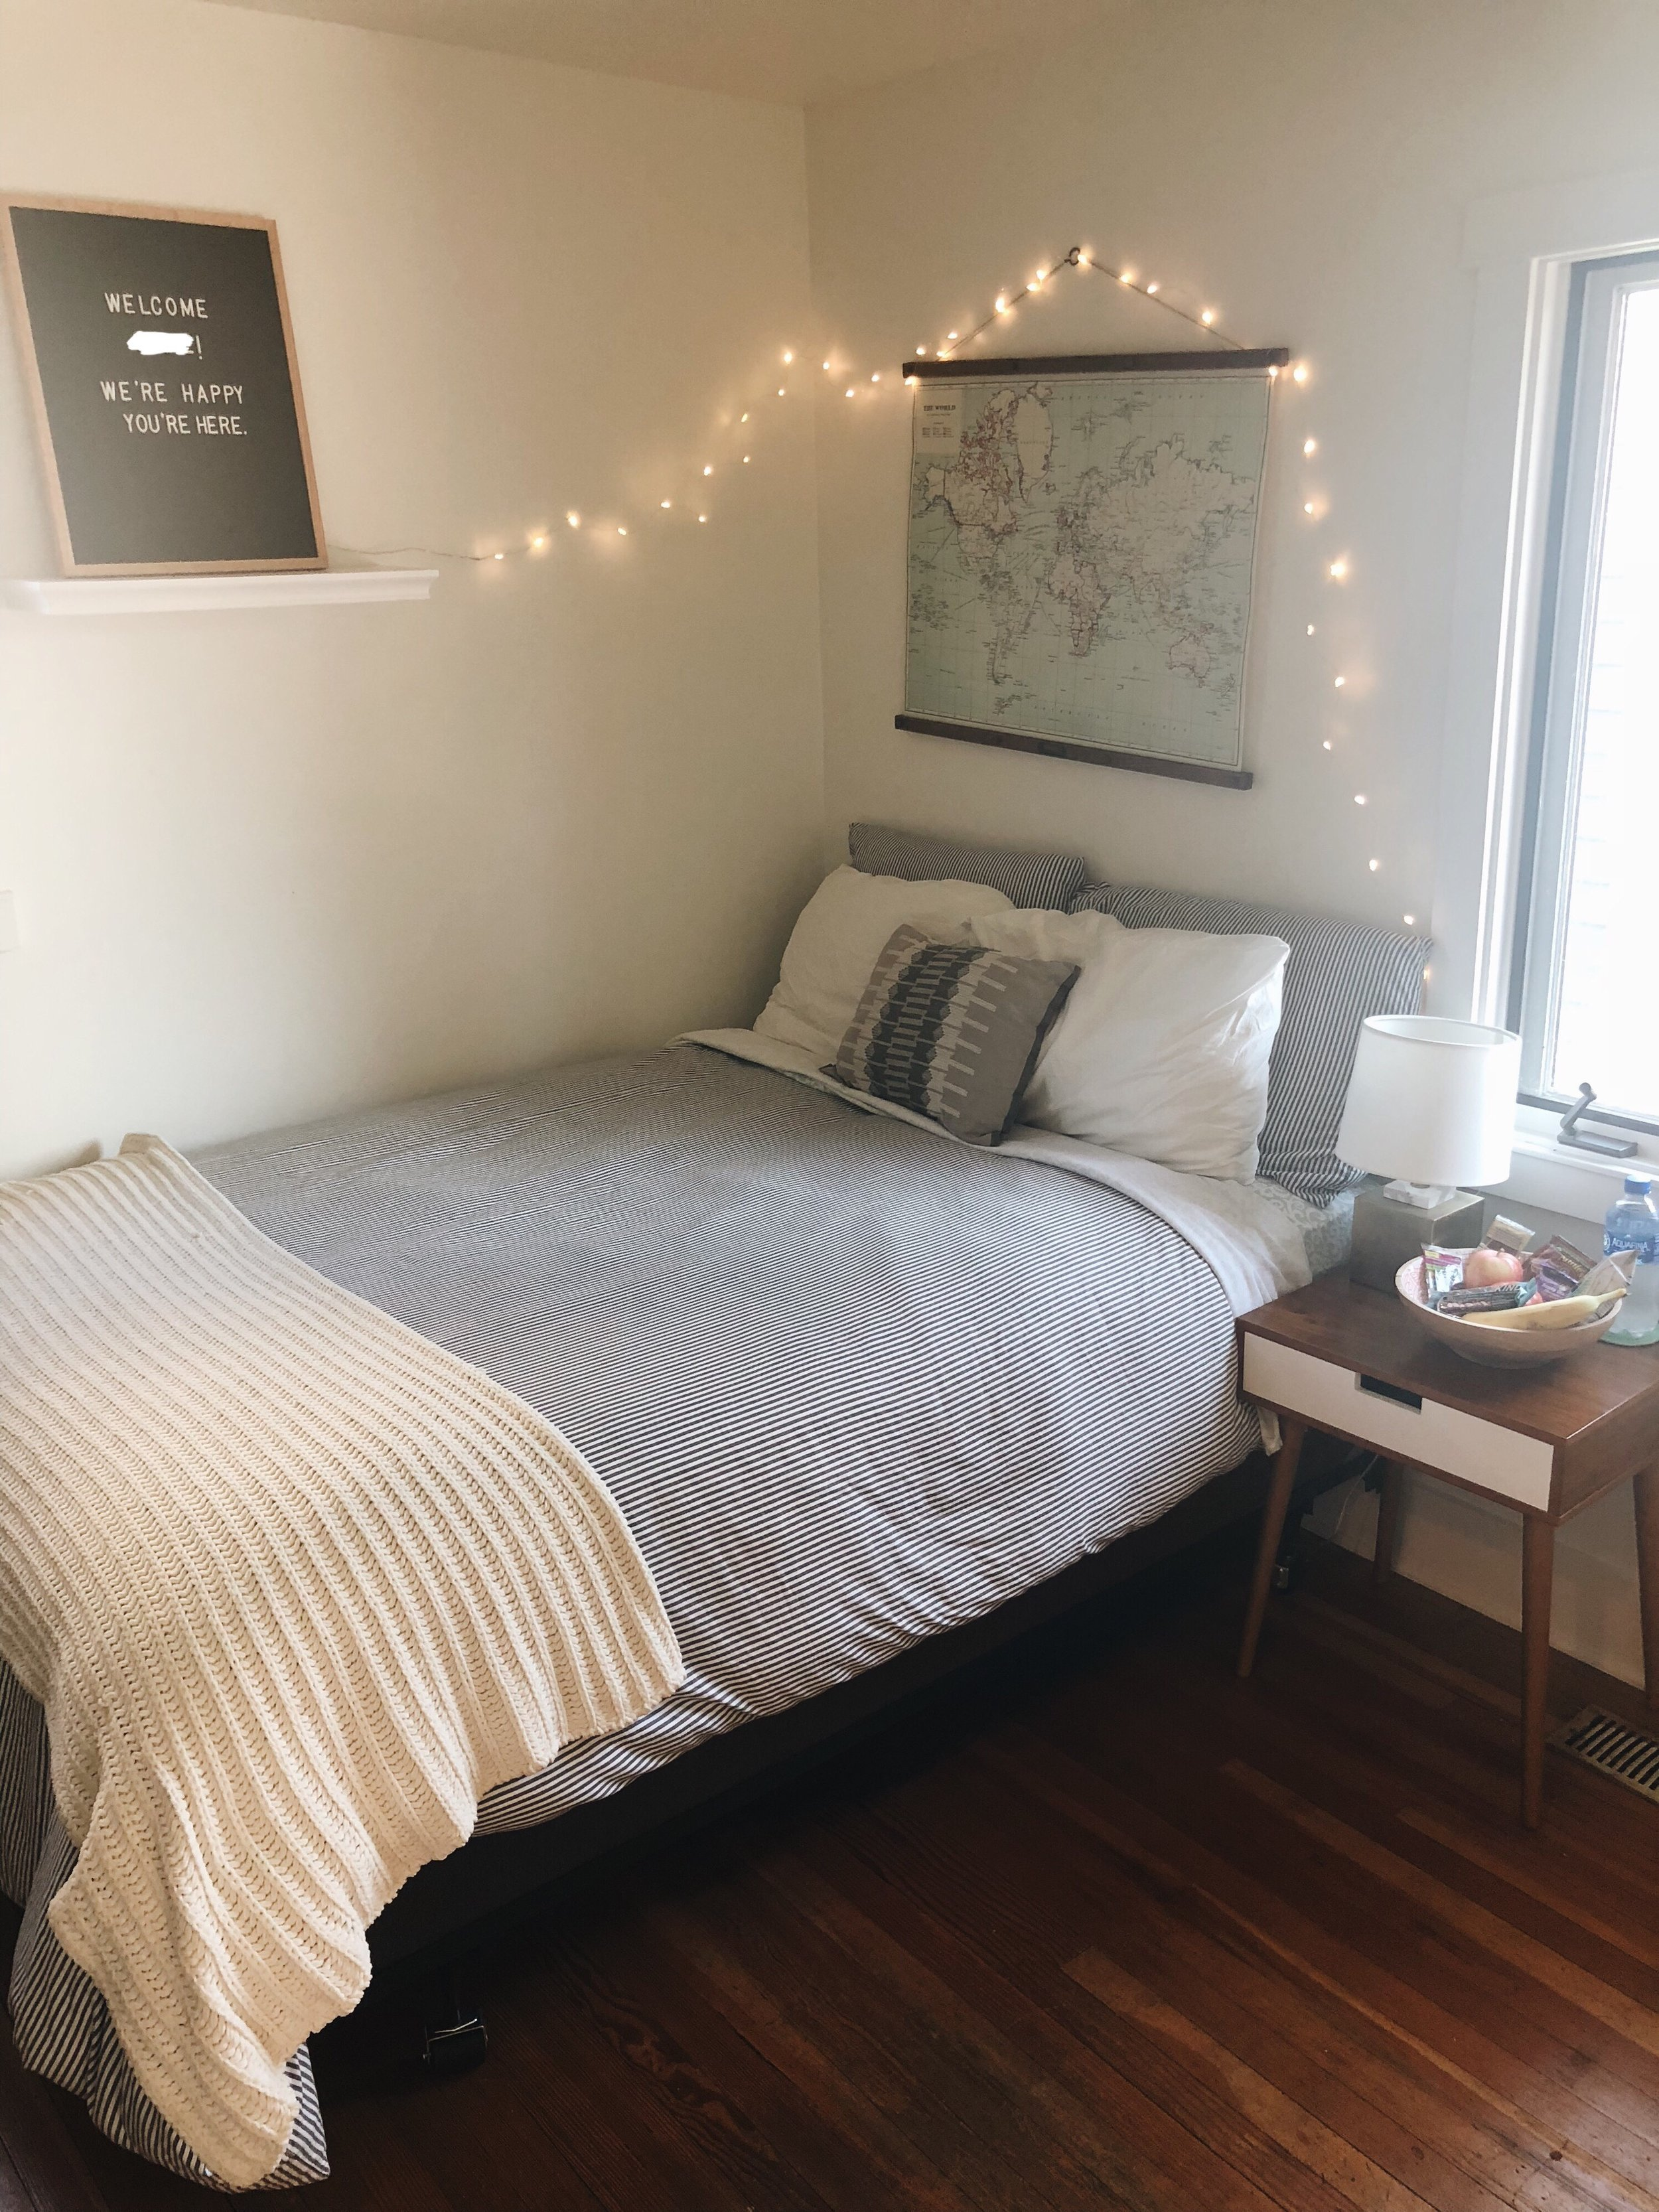 Our teens room 10 minutes before they arrived. We use string lights instead of night-lights and make sure to keep a fully stocked Yes! Basket and water by their bed.